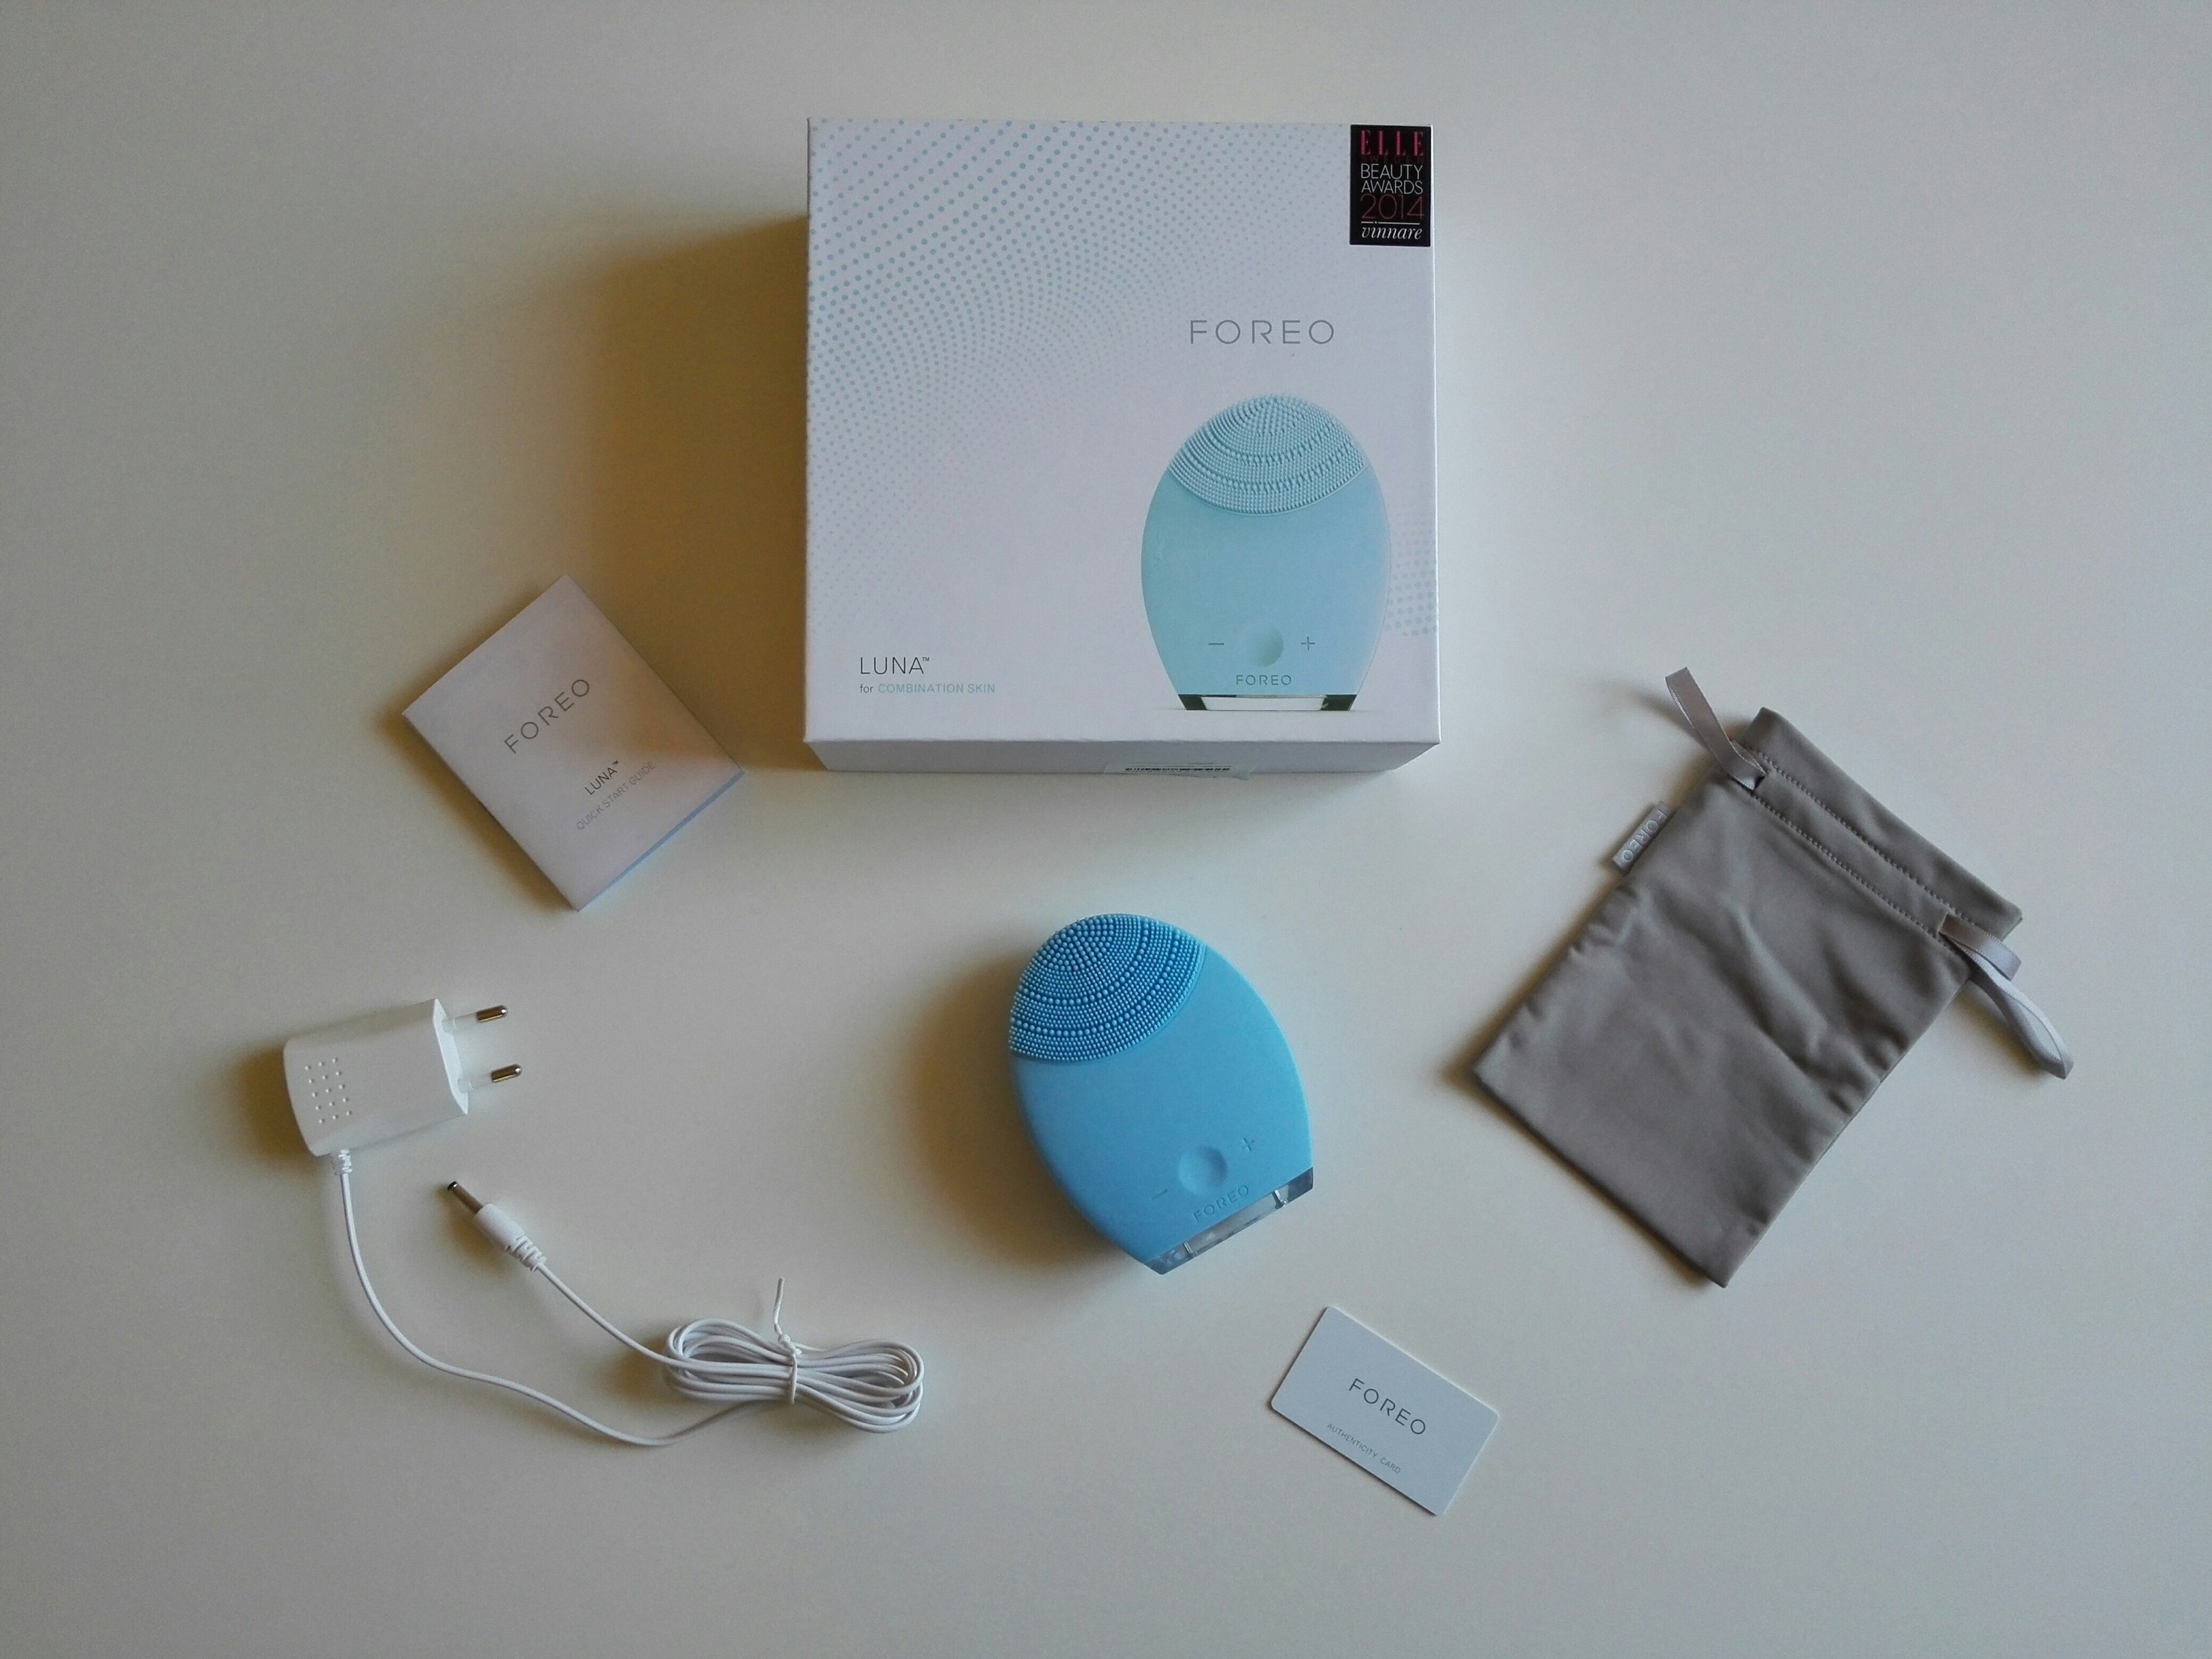 Unboxing Foreo Luna pieles mixtas